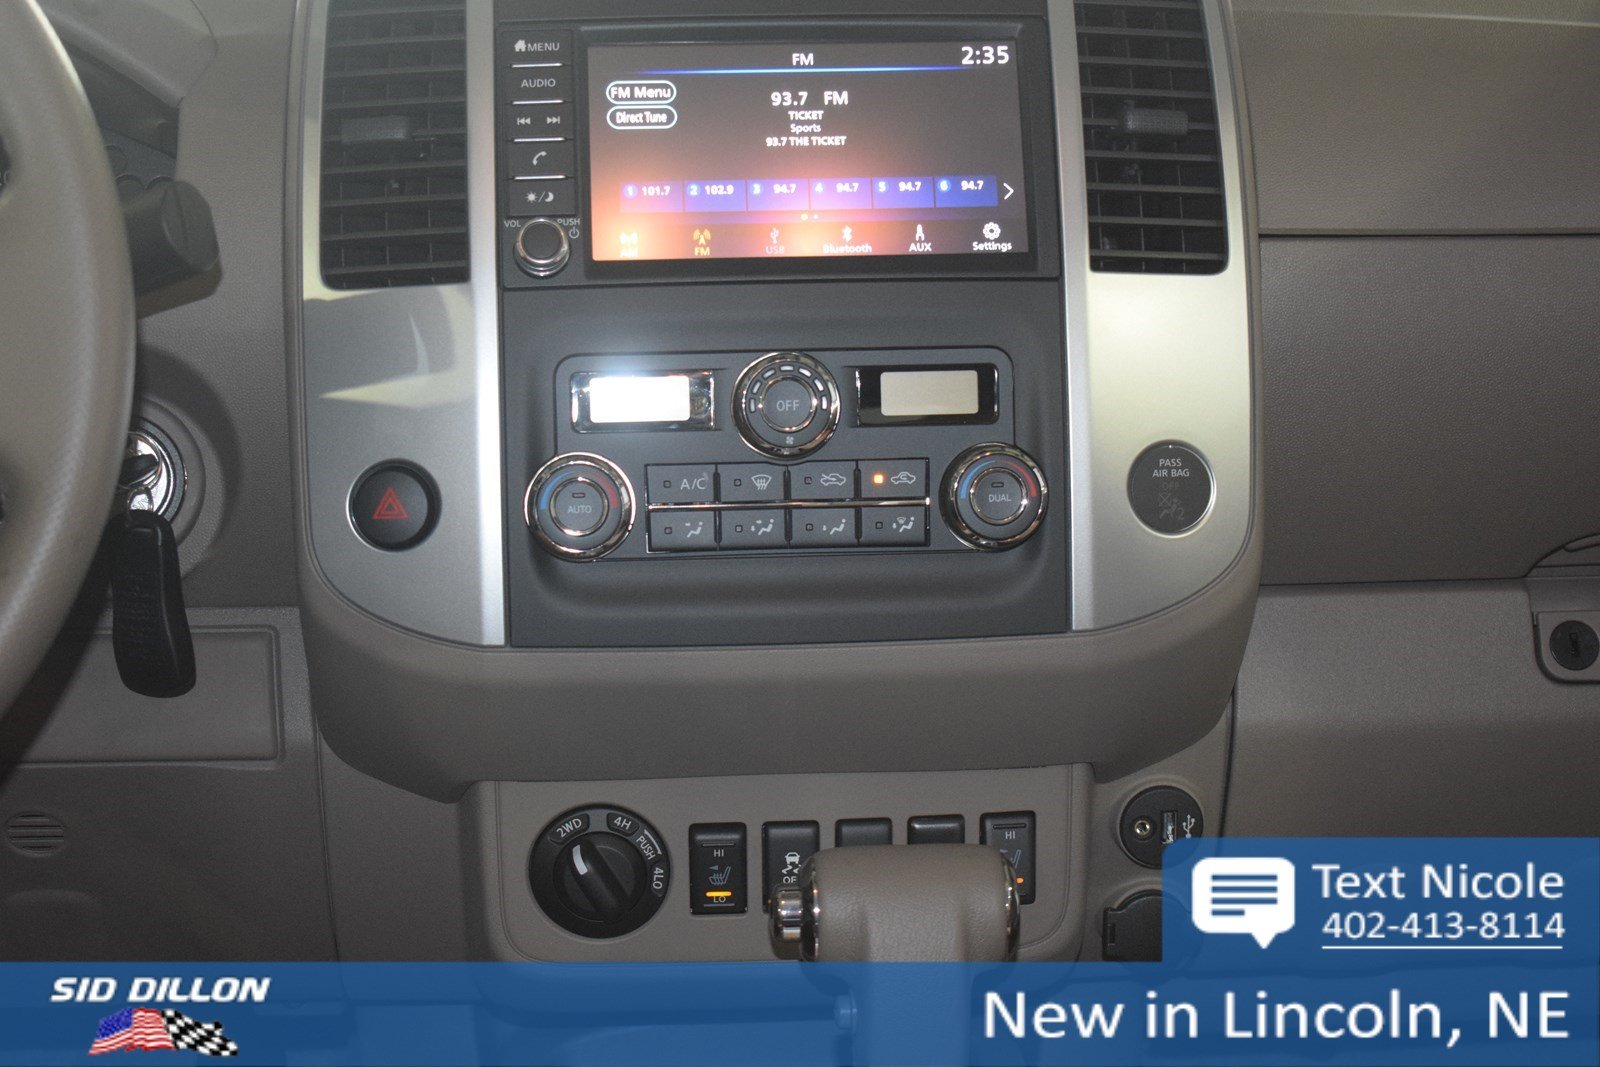 New 2019 Nissan Frontier Sv Crew Cab In Lincoln 4n1914 Sid Dillon Front Airbag Sensor 2002 Xterra